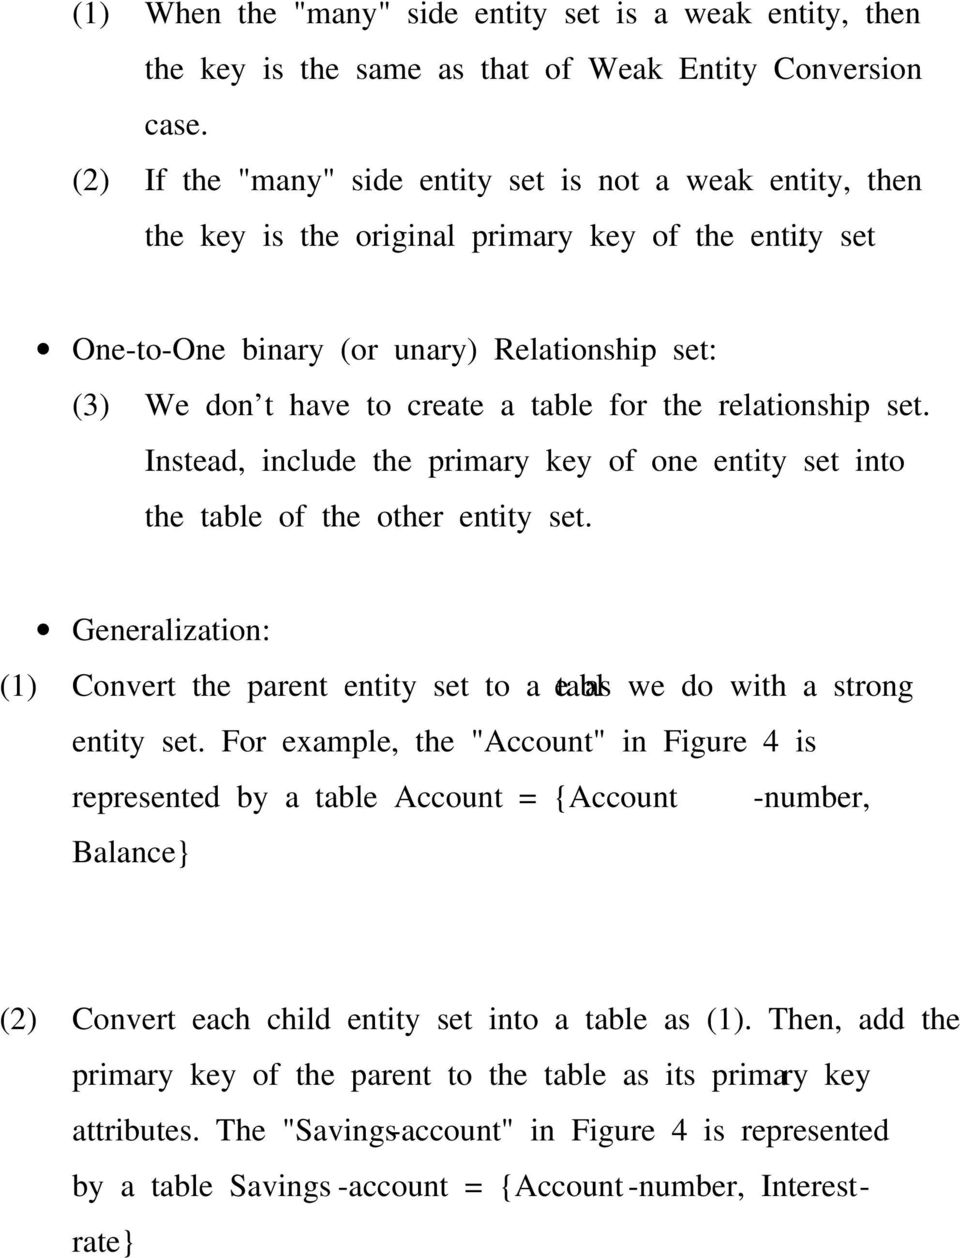 One-to-One binary (or unary) Relationship set: (3) We don t have to create a table for the relationship set. Instead, include the primary key of one entity set into the table of the other entity set.